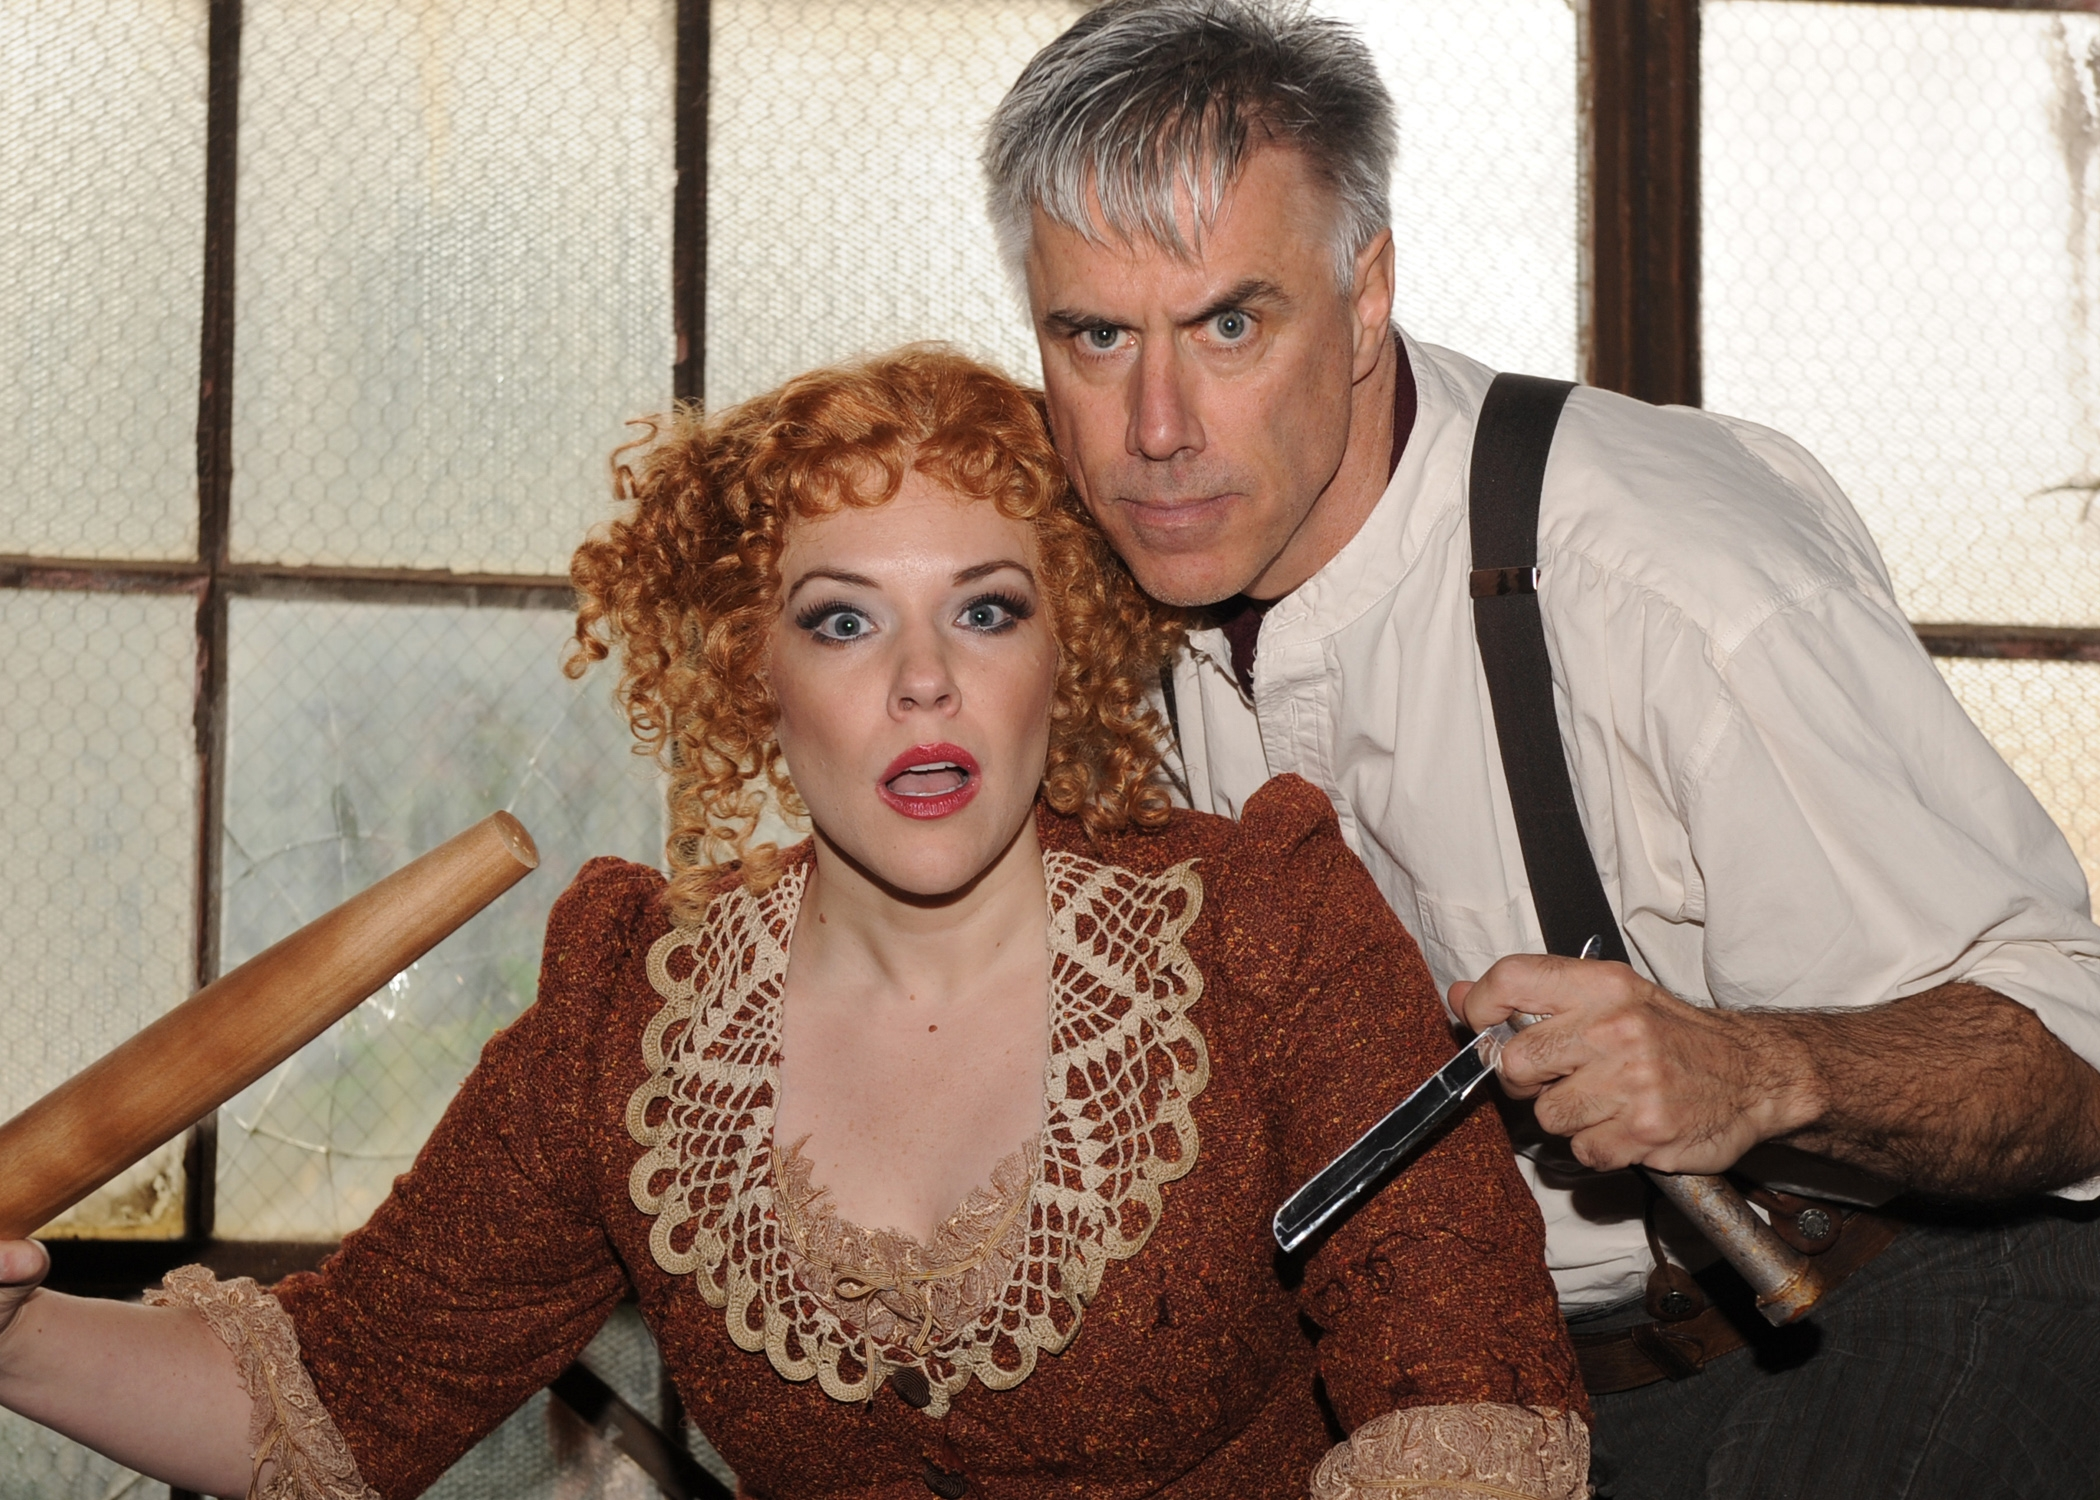 Jeff McCarthy & Emily Skinner Star In Lyric Theater's SWEENEY TODD, Opens 10/22